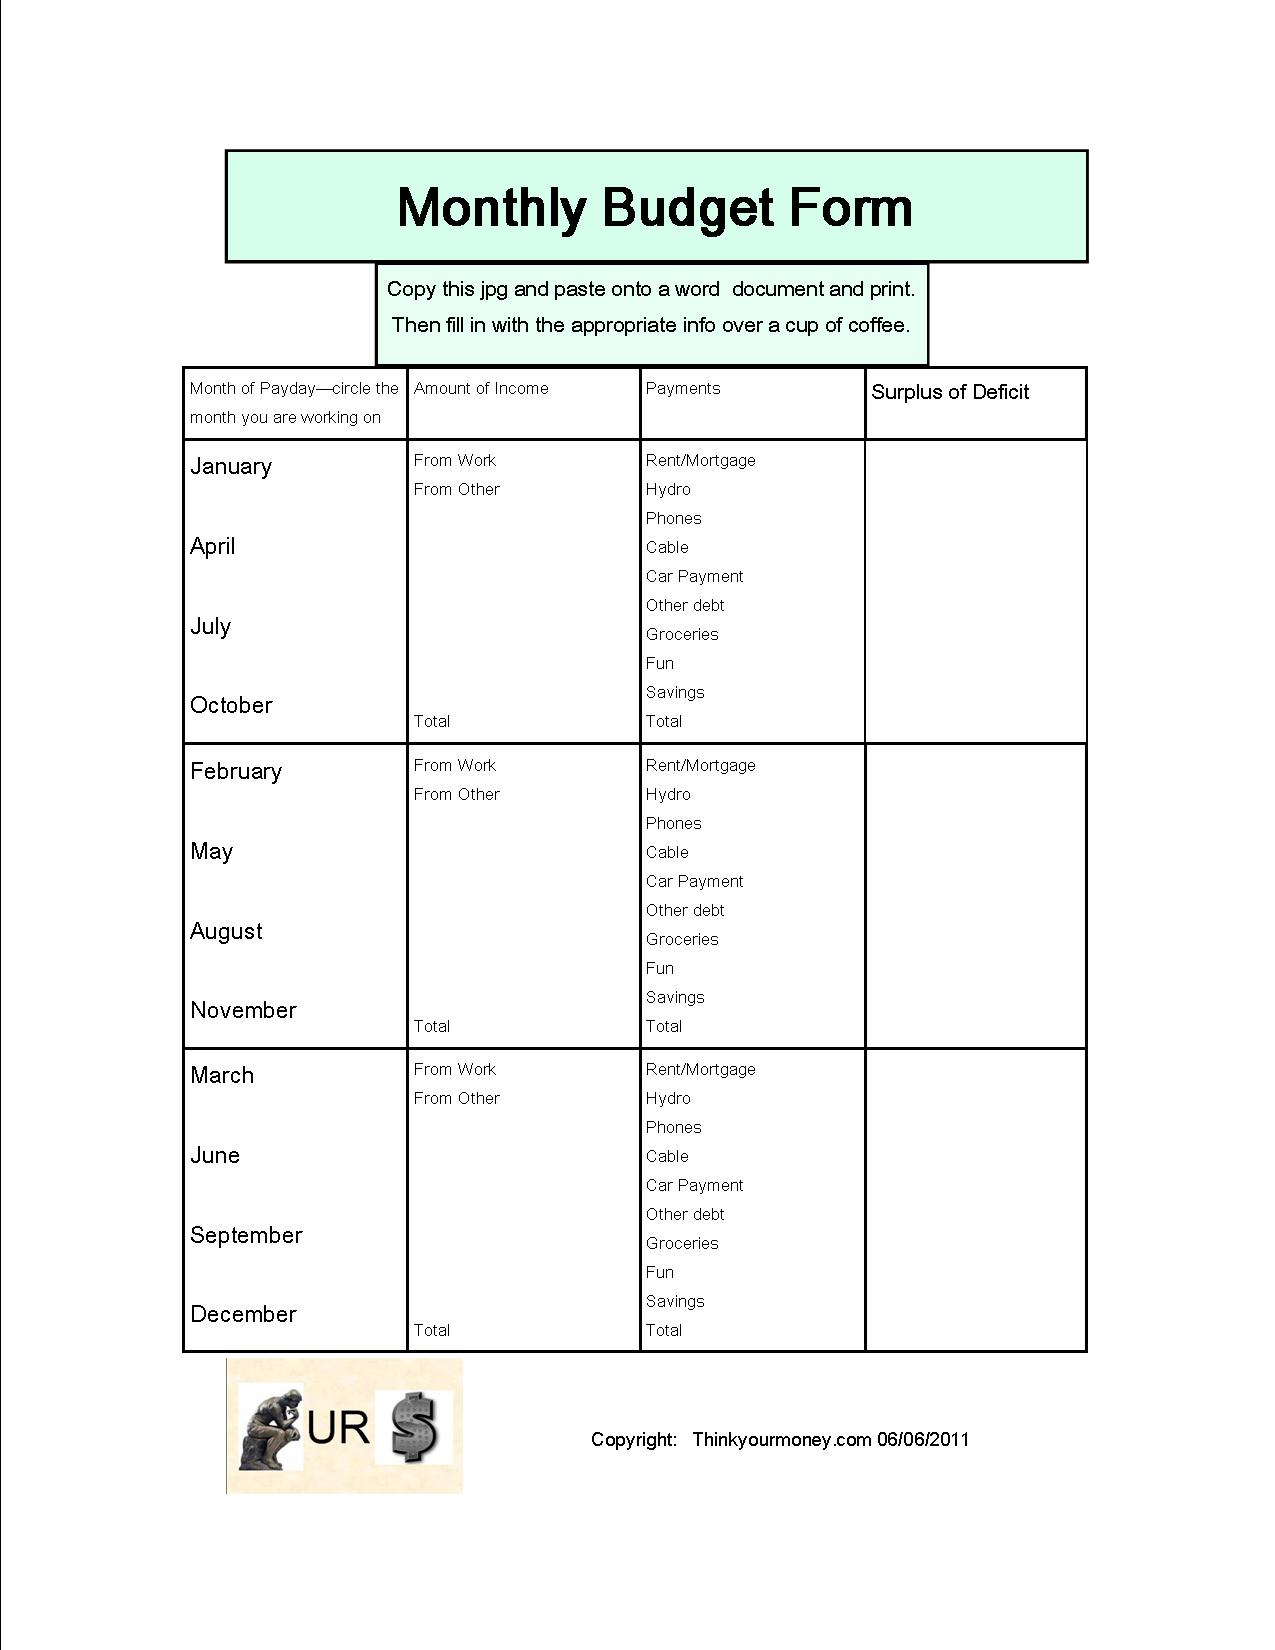 How To Make A Monthly Bill Spreadsheet Intended For Monthly Budget Spreadsheet